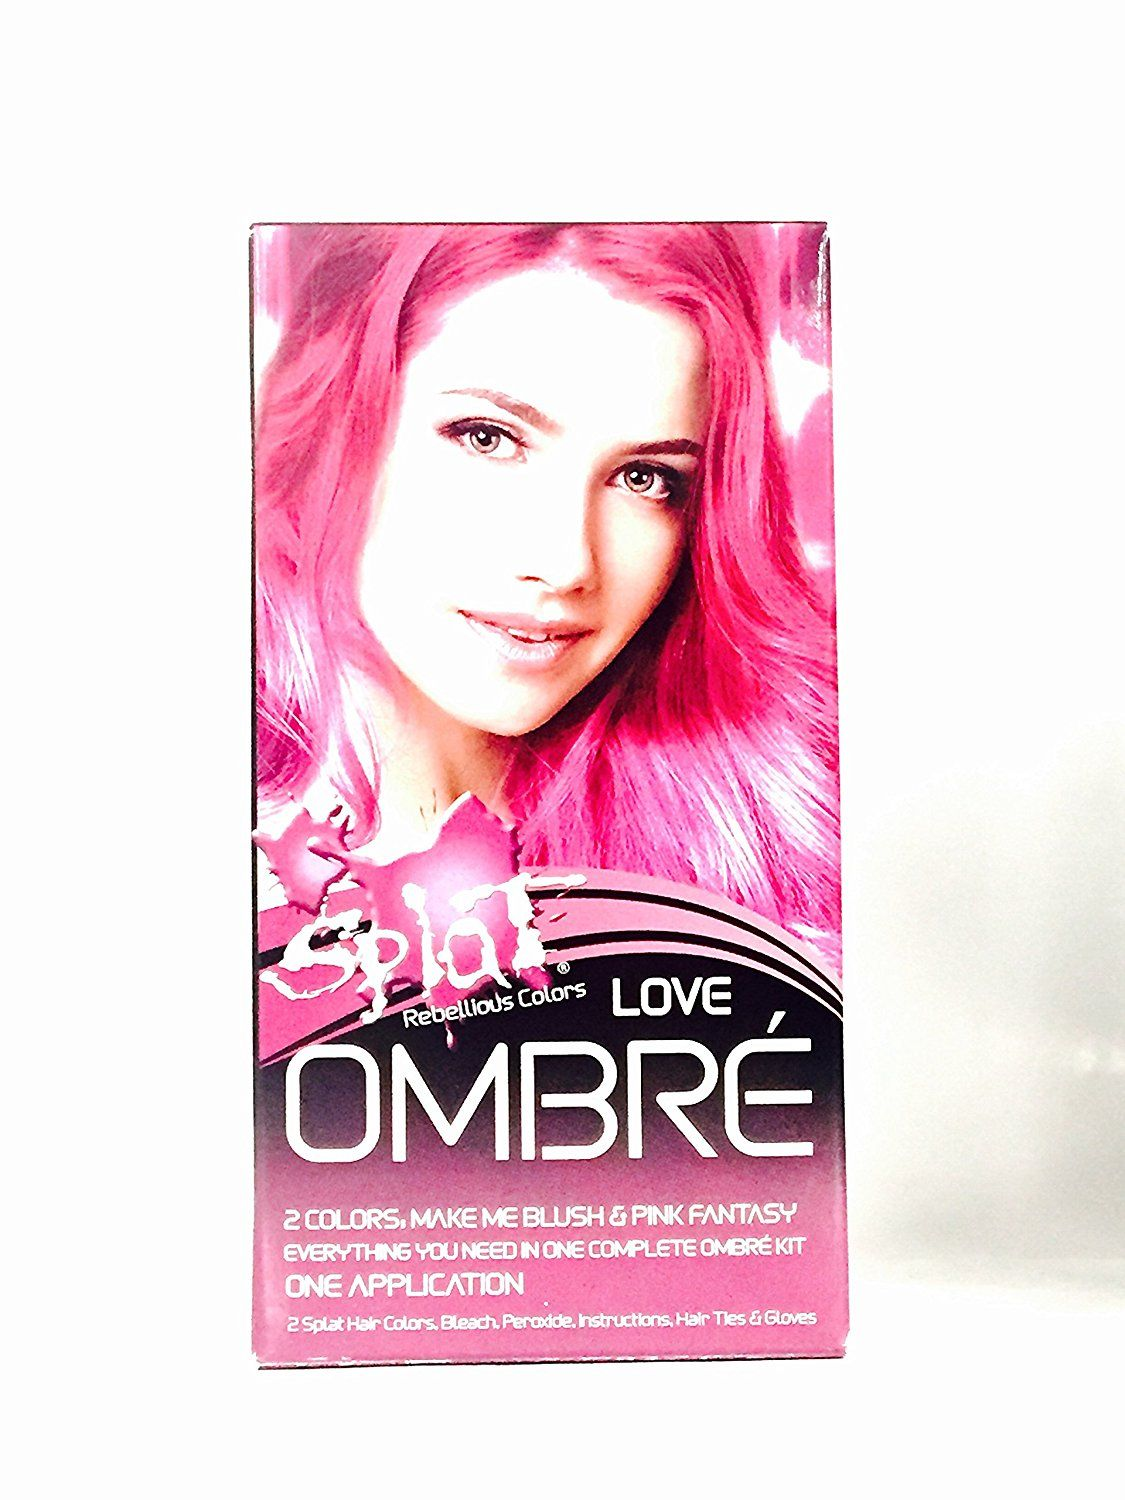 Developlus Splat Kit Love Ombre Read More Reviews Of The Product By Visiting The Link On The Image Haircare Ombre Hair Ombre Hair Color Hair Color Cream